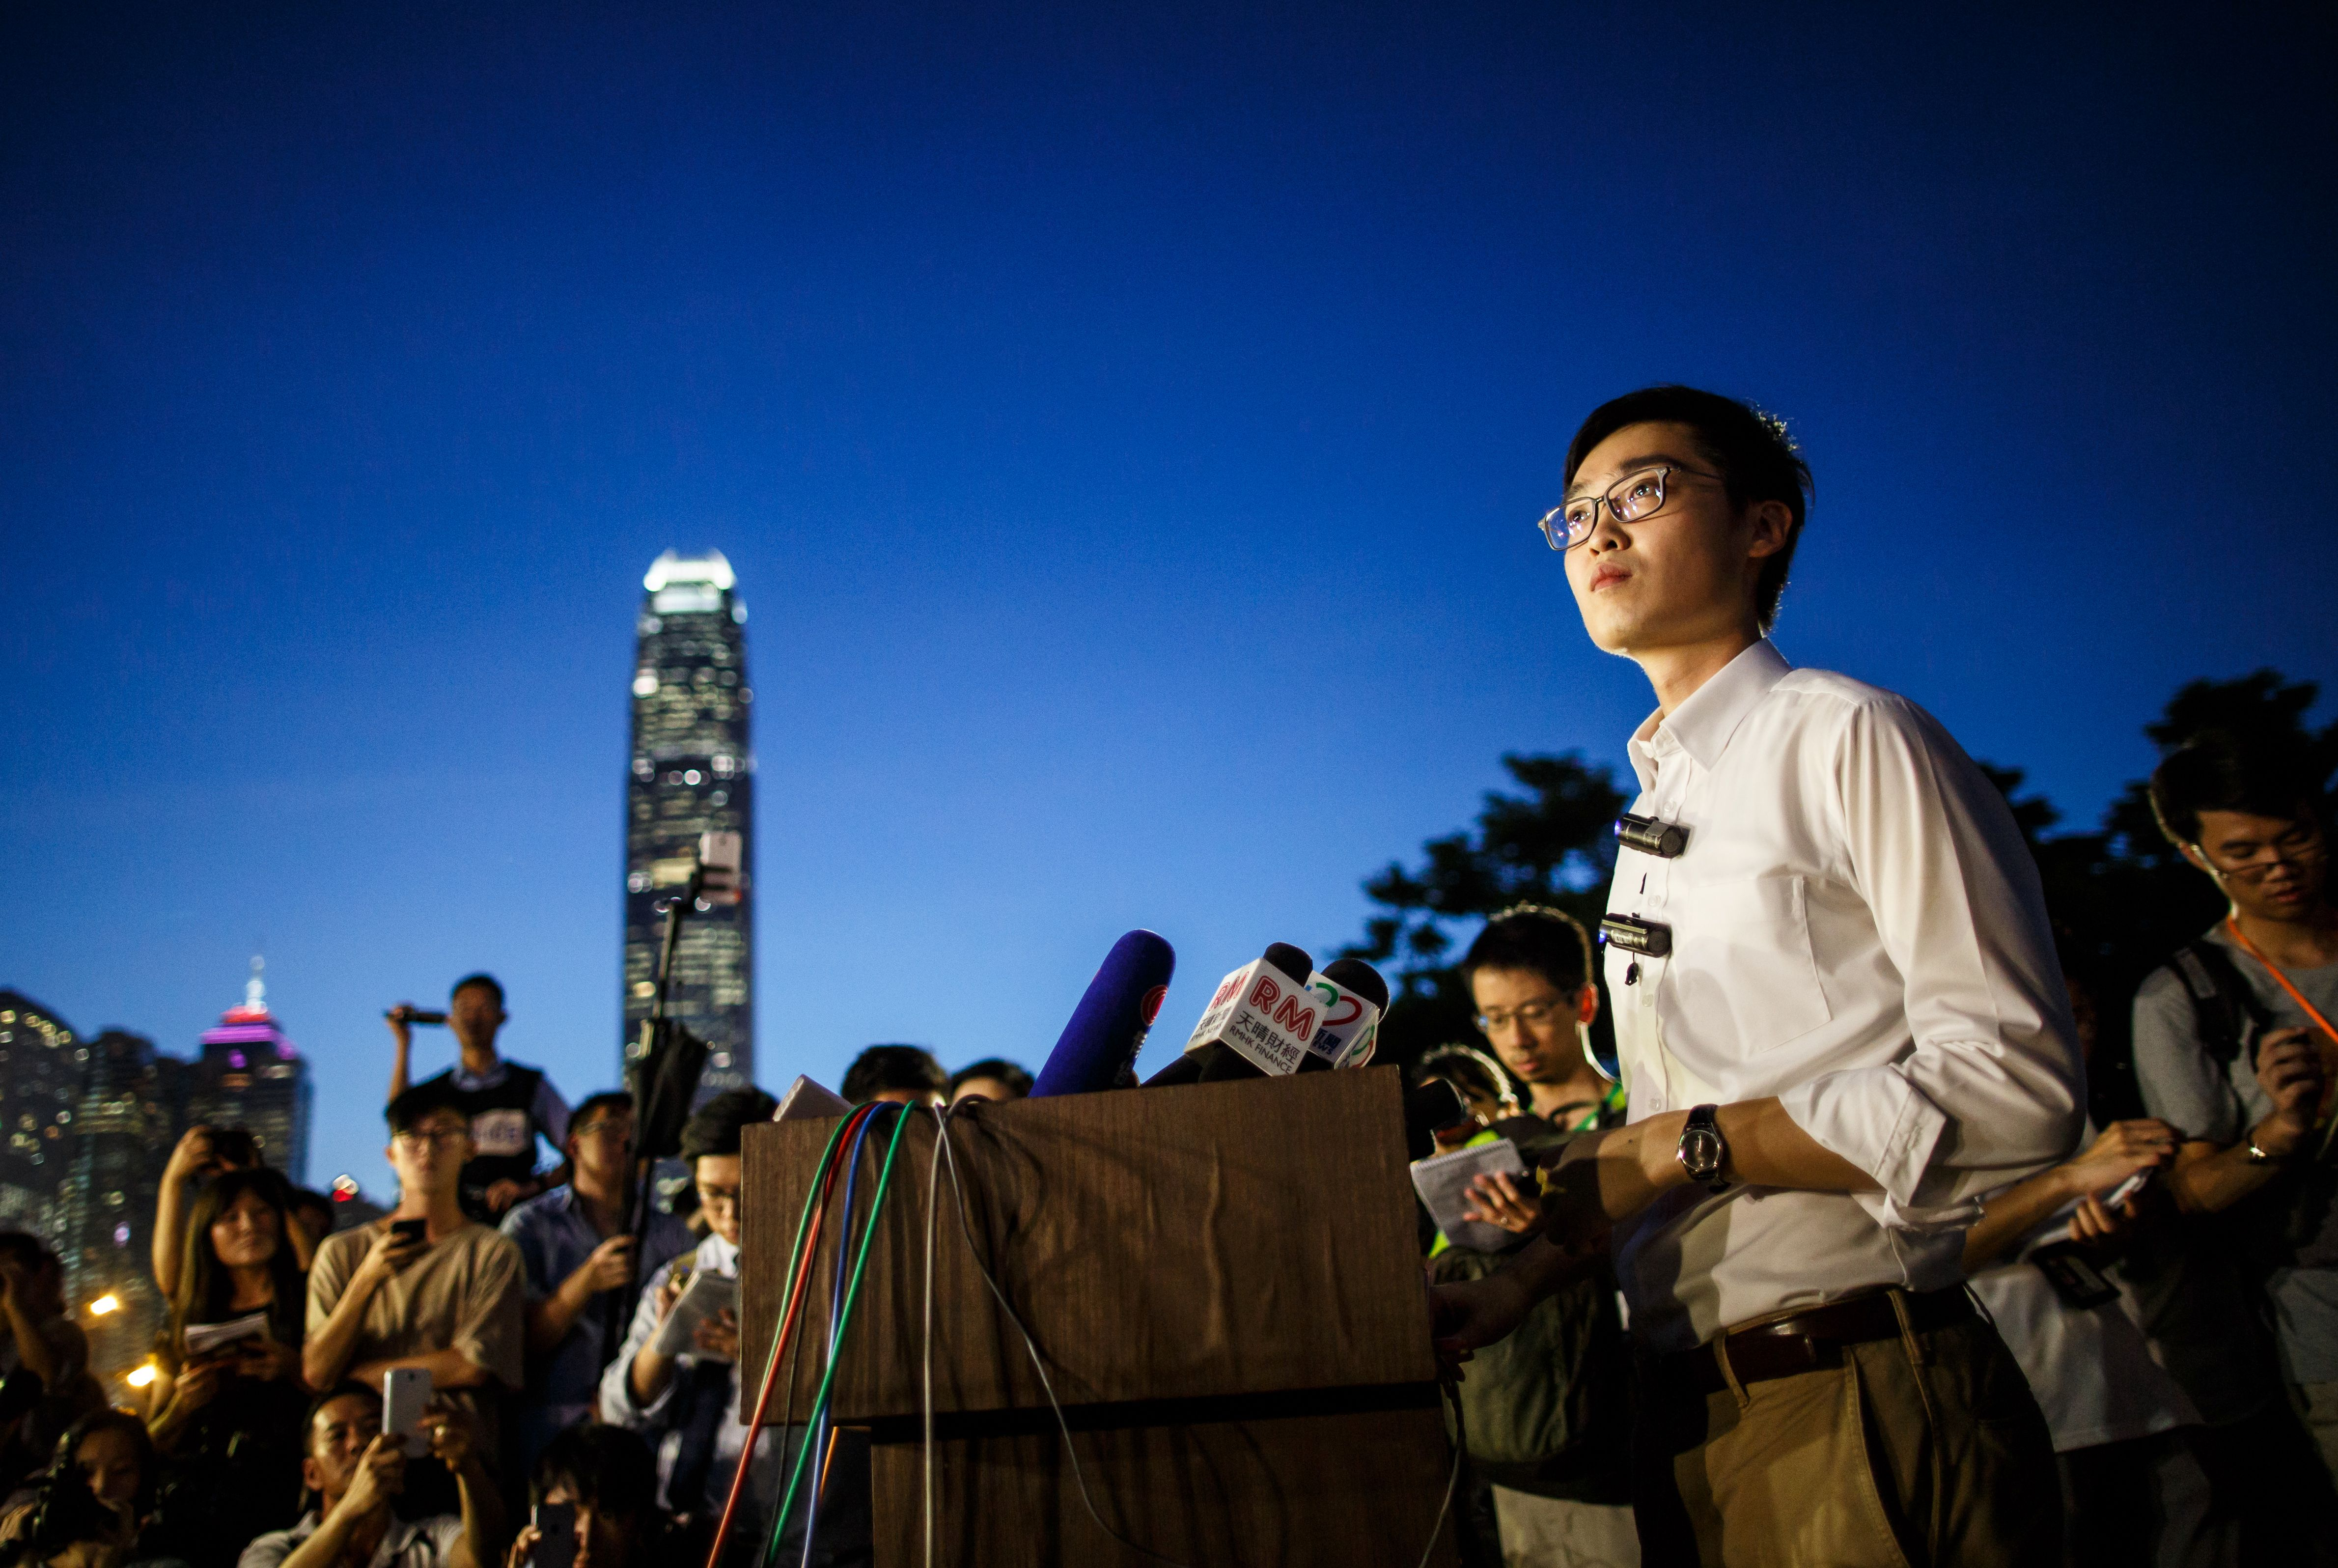 Andy Chan (R), 25, leader of the pro-independence Hong Kong National Party and a disqualified candidate of upcoming elections, gives a press conference at the start of a rally near the government's headquarters in Hong Kong on August 5, 2016. The gathering was the first pro-independence rally in Hong Kong history and likely the first time that a community of Han Chinese — as opposed to Uighurs or Tibetans — had demanded independence from the People's Republic.